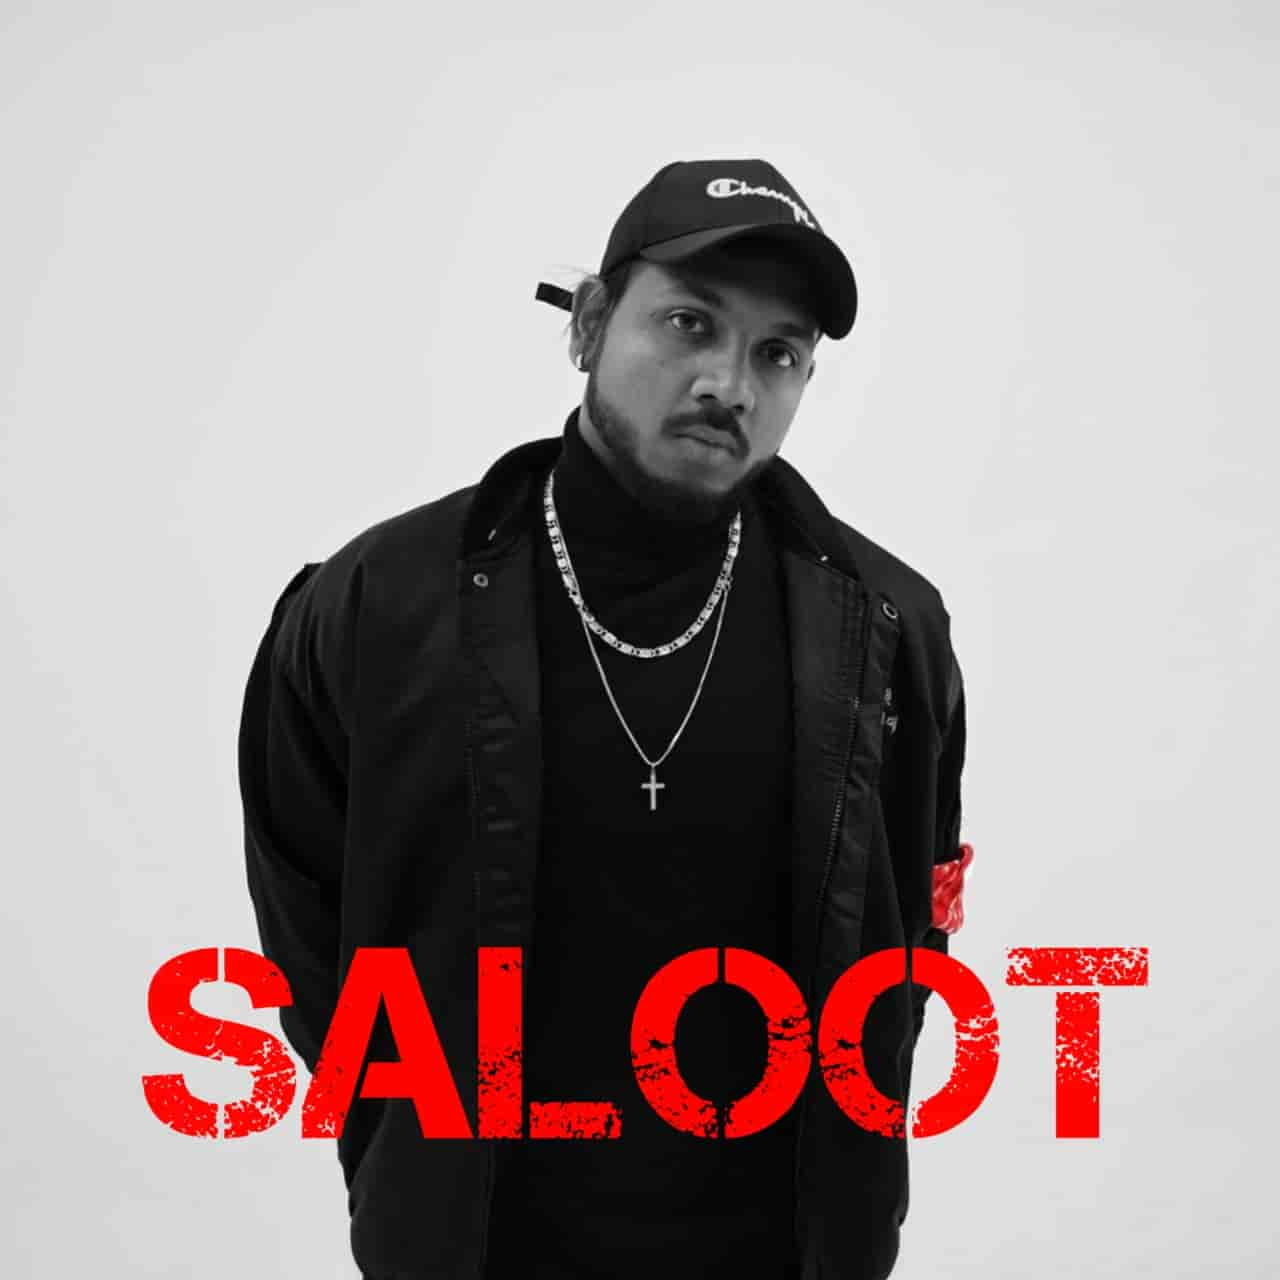 SALOOT LYRICS - King | The Gorilla Bounce